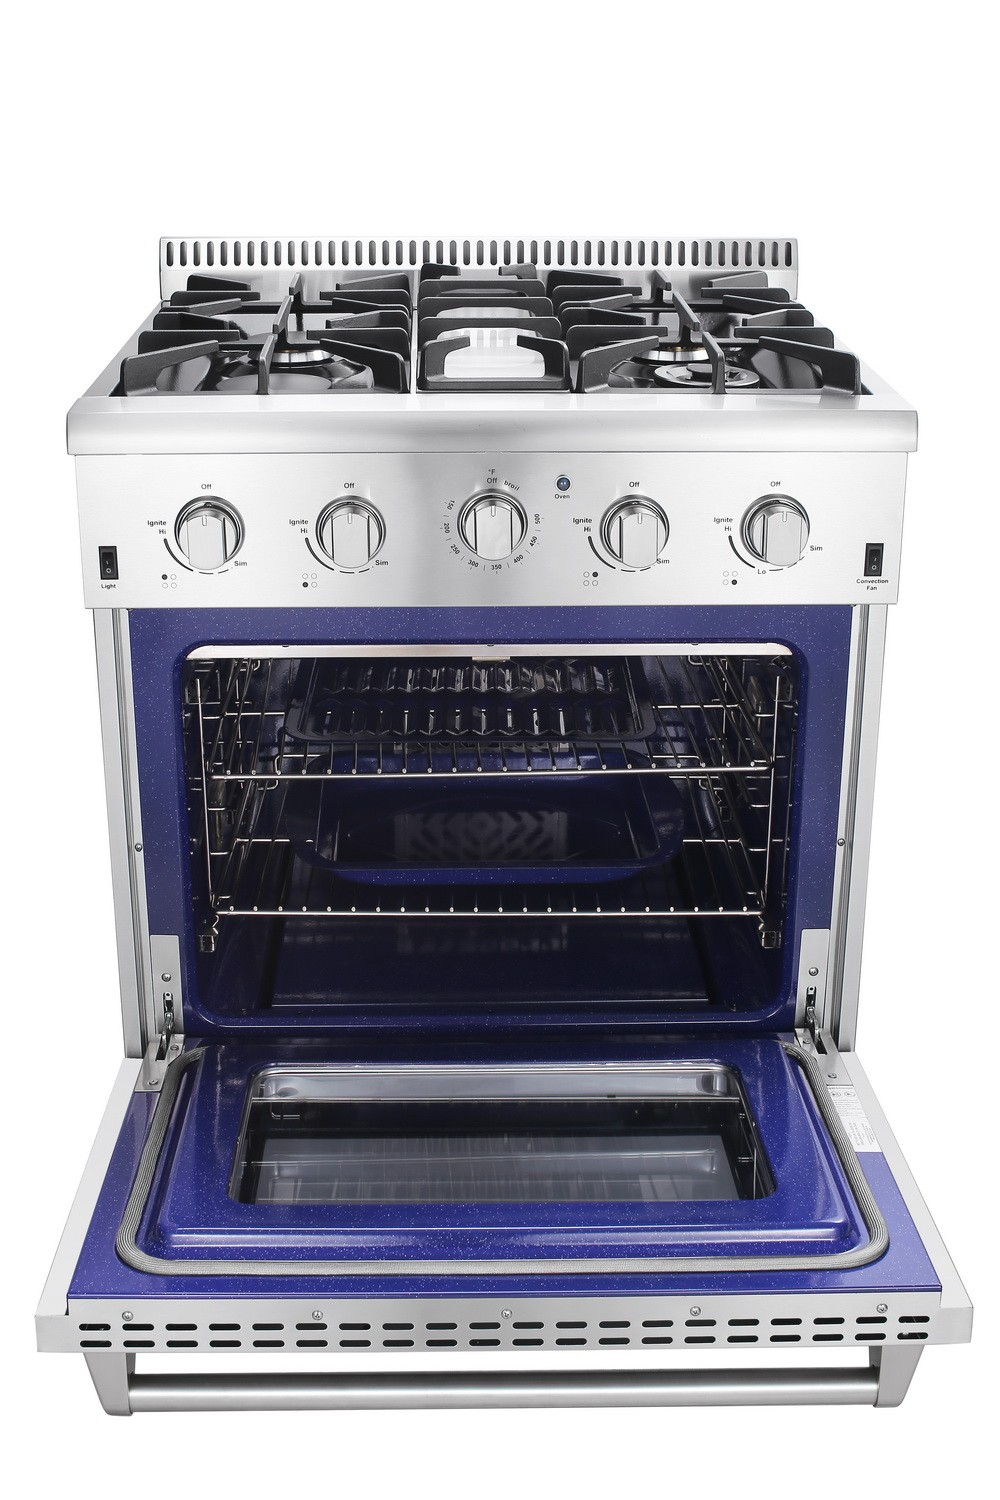 professional 30 inch residential gas cooking range with oven view gas cooking range hyxion. Black Bedroom Furniture Sets. Home Design Ideas